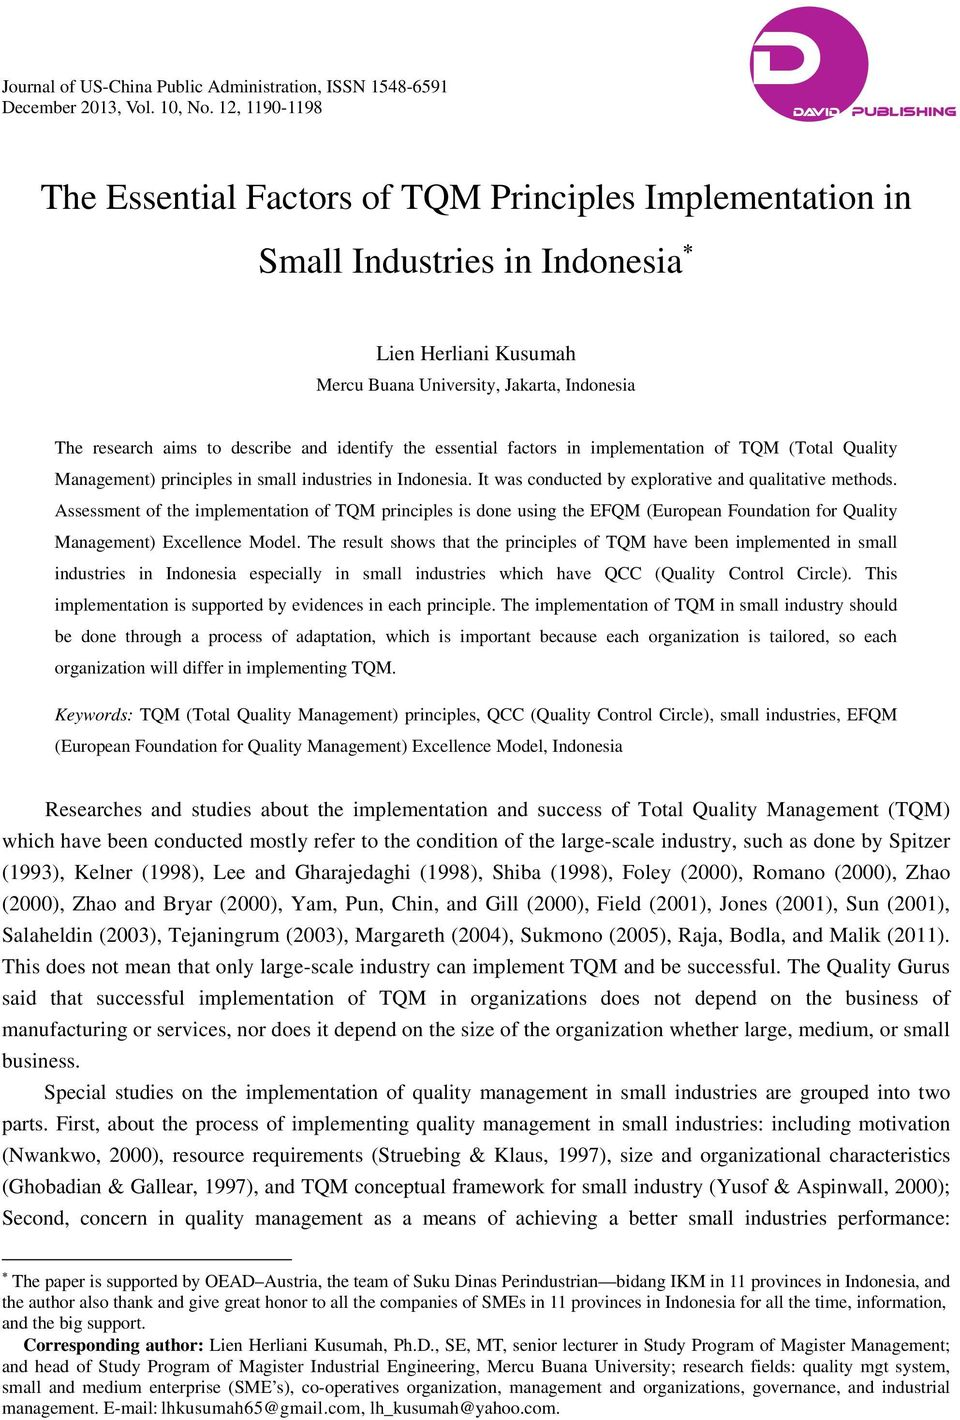 describe and identify the essential factors in implementation of TQM (Total Quality Management) principles in small industries in Indonesia. It was conducted by explorative and qualitative methods.